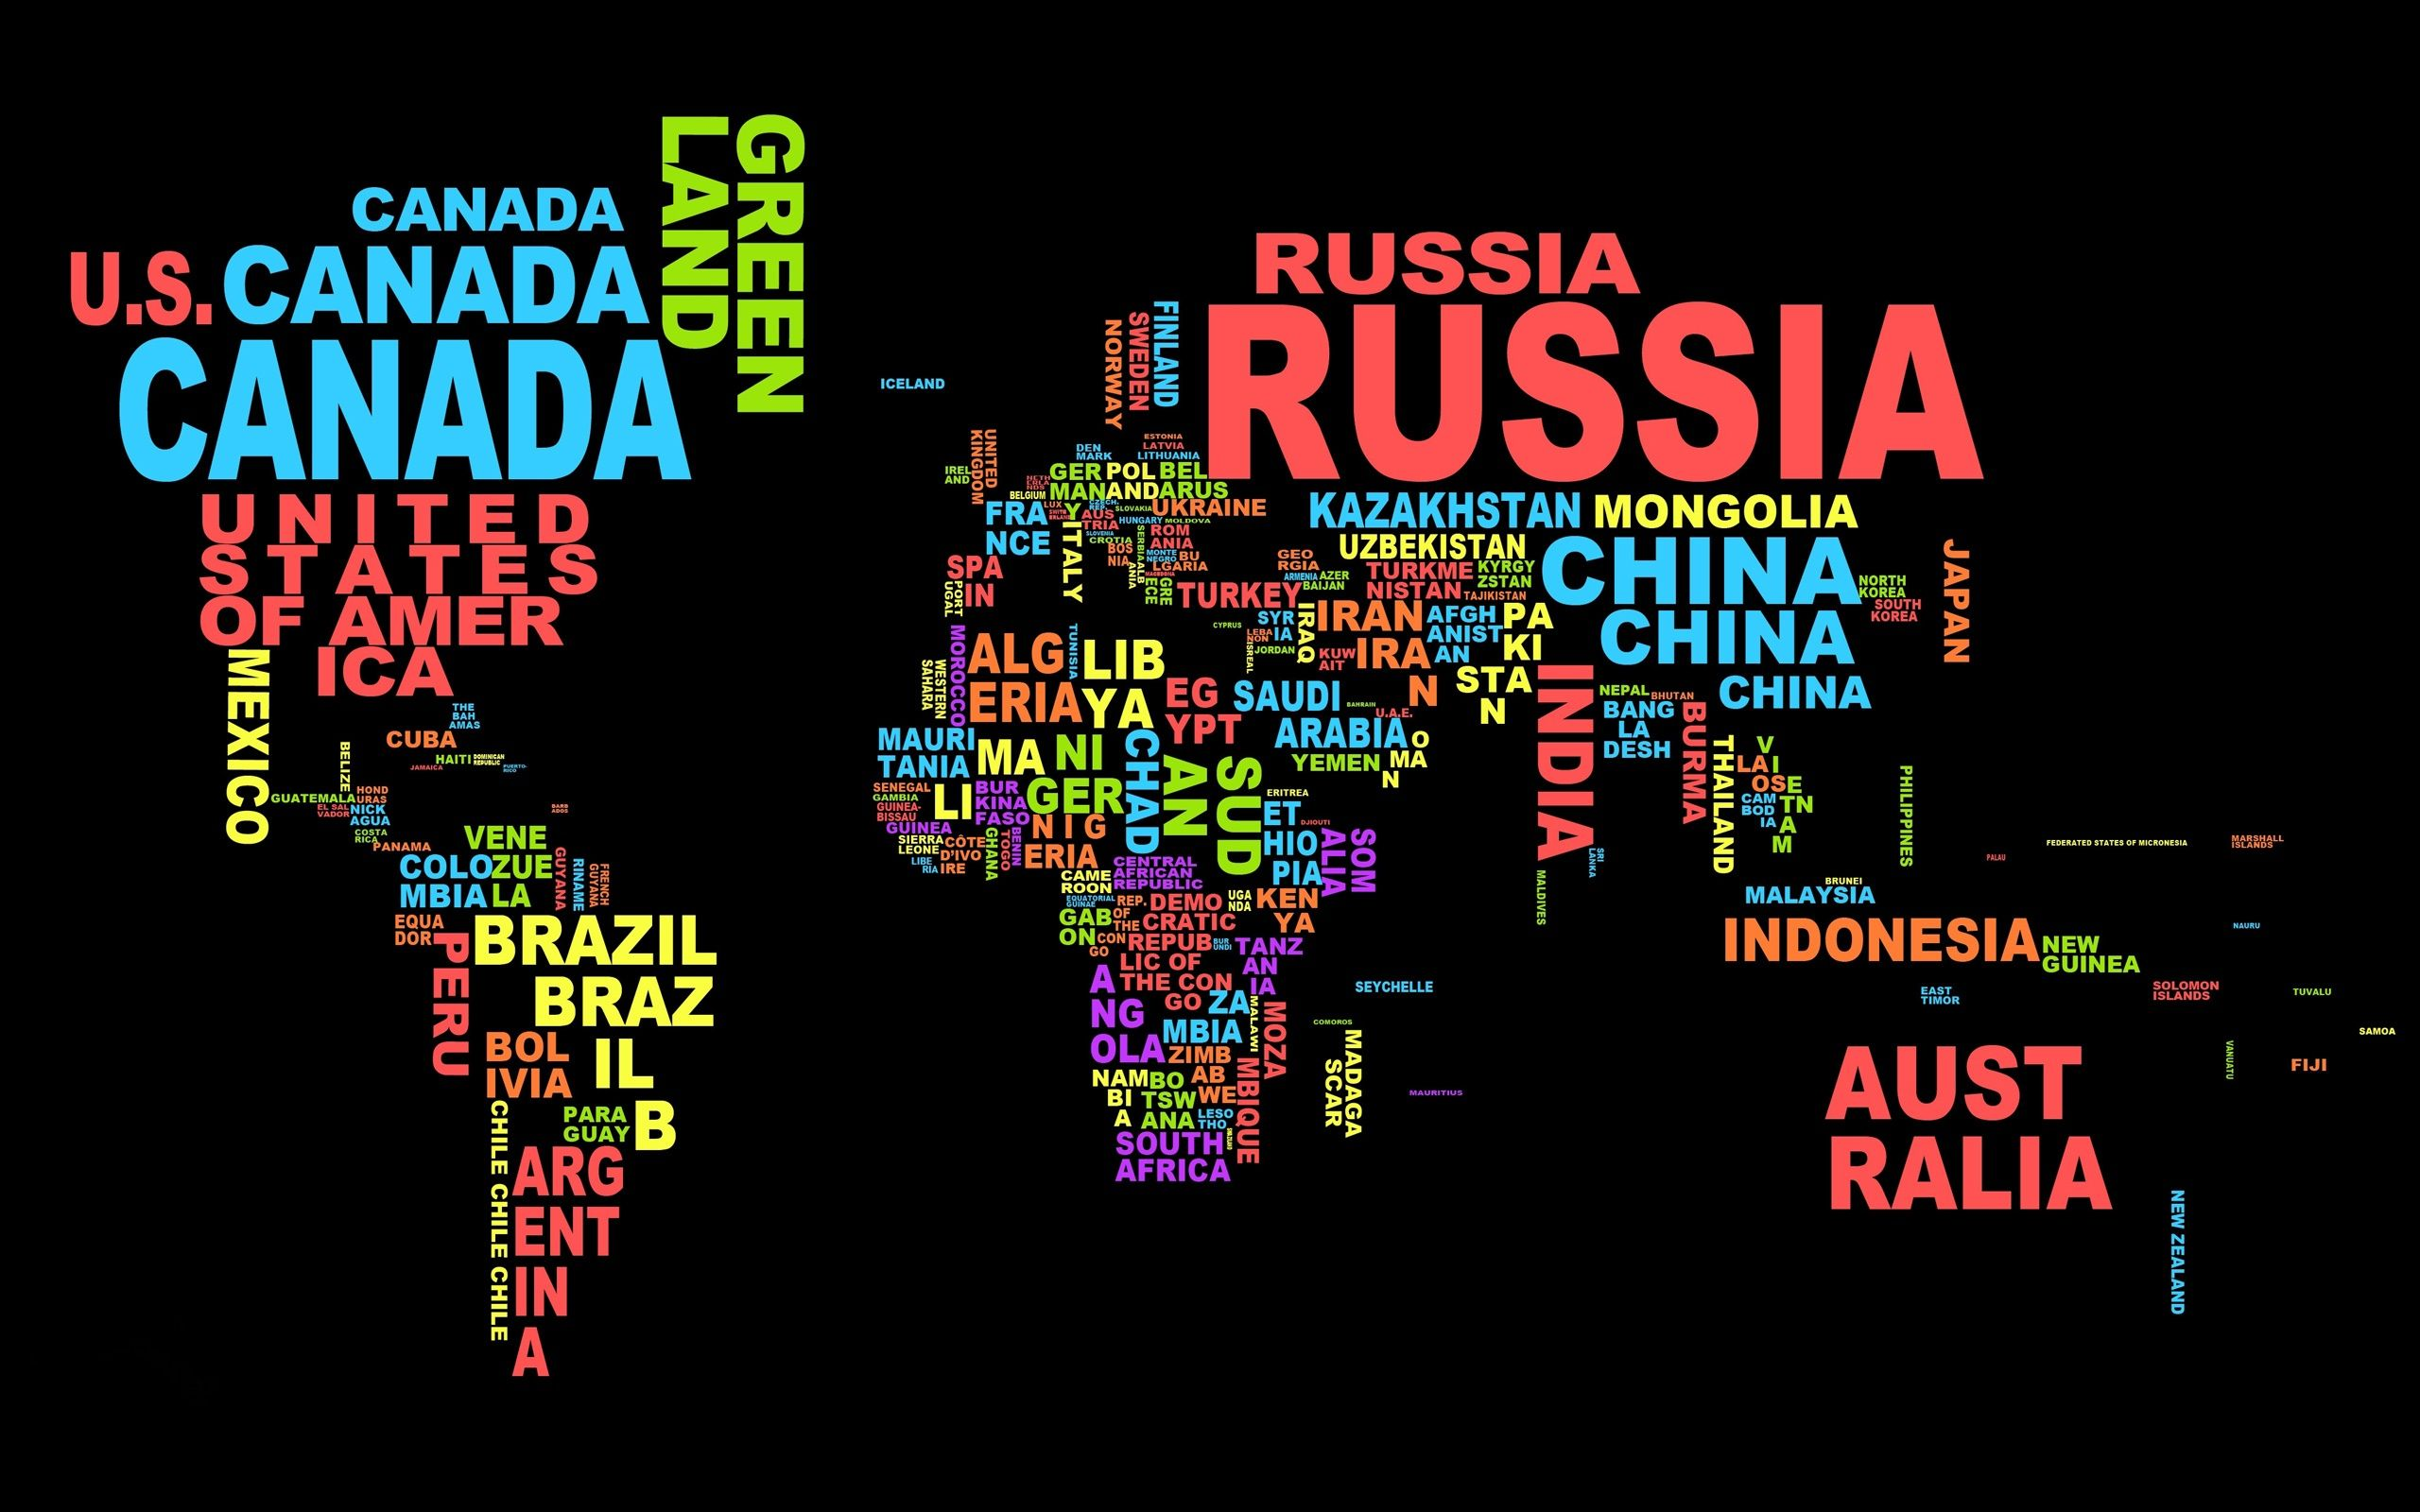 Text map google search pr1text mapping42 pinterest a map of earth using only text its almost unreal very well done it might help one with a map test who knows one planetversion 3 by gumiabroncs Gallery